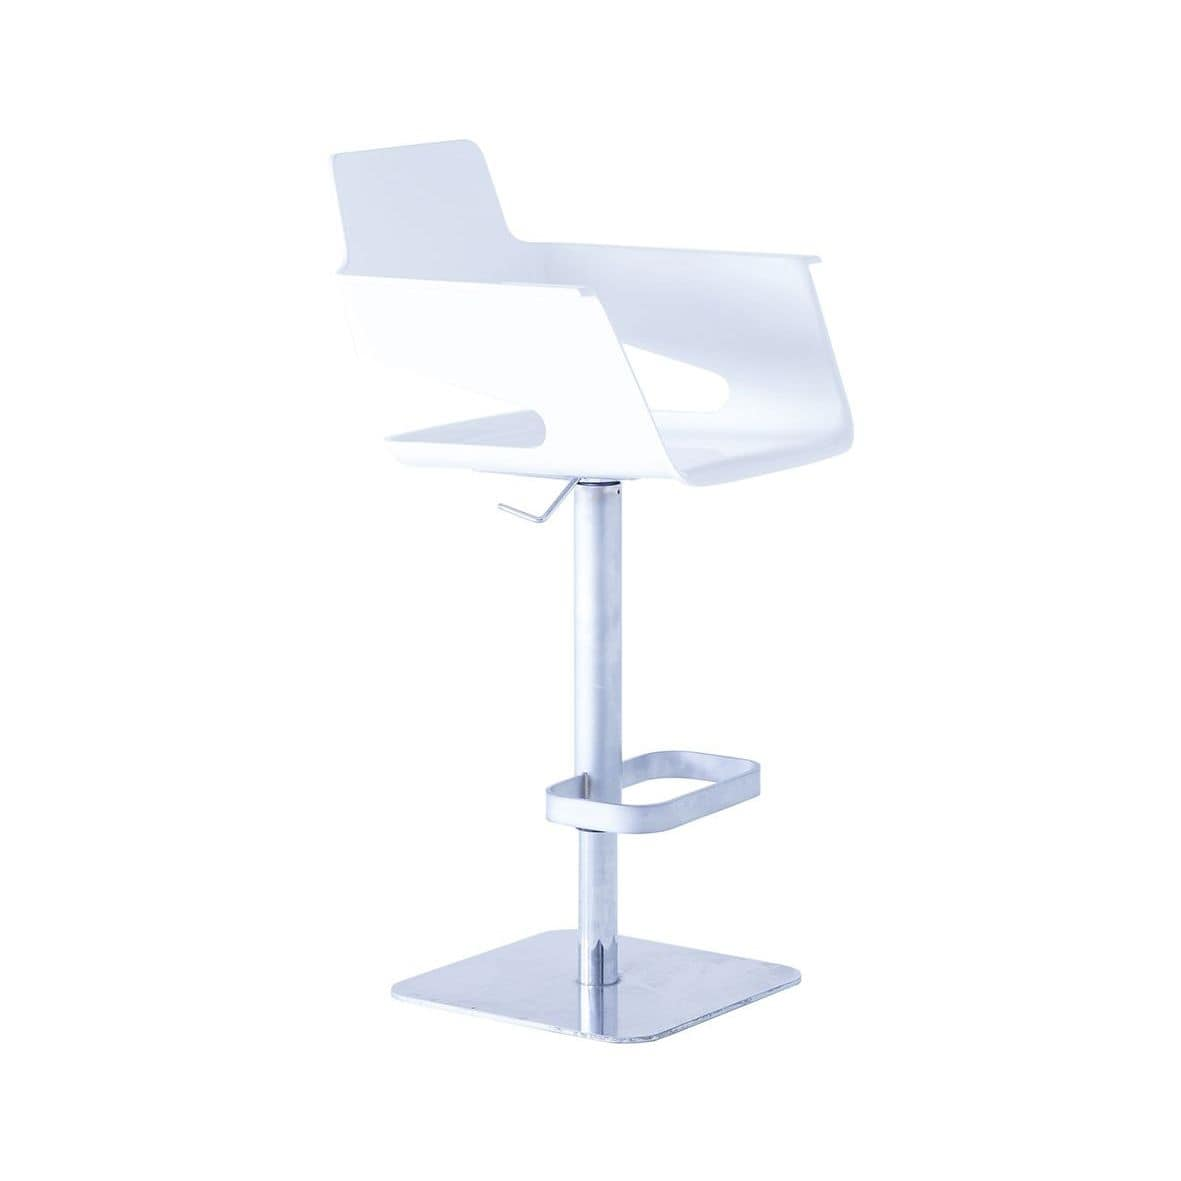 B32 ST, Stool with chrome base ideal for bars and restaurants